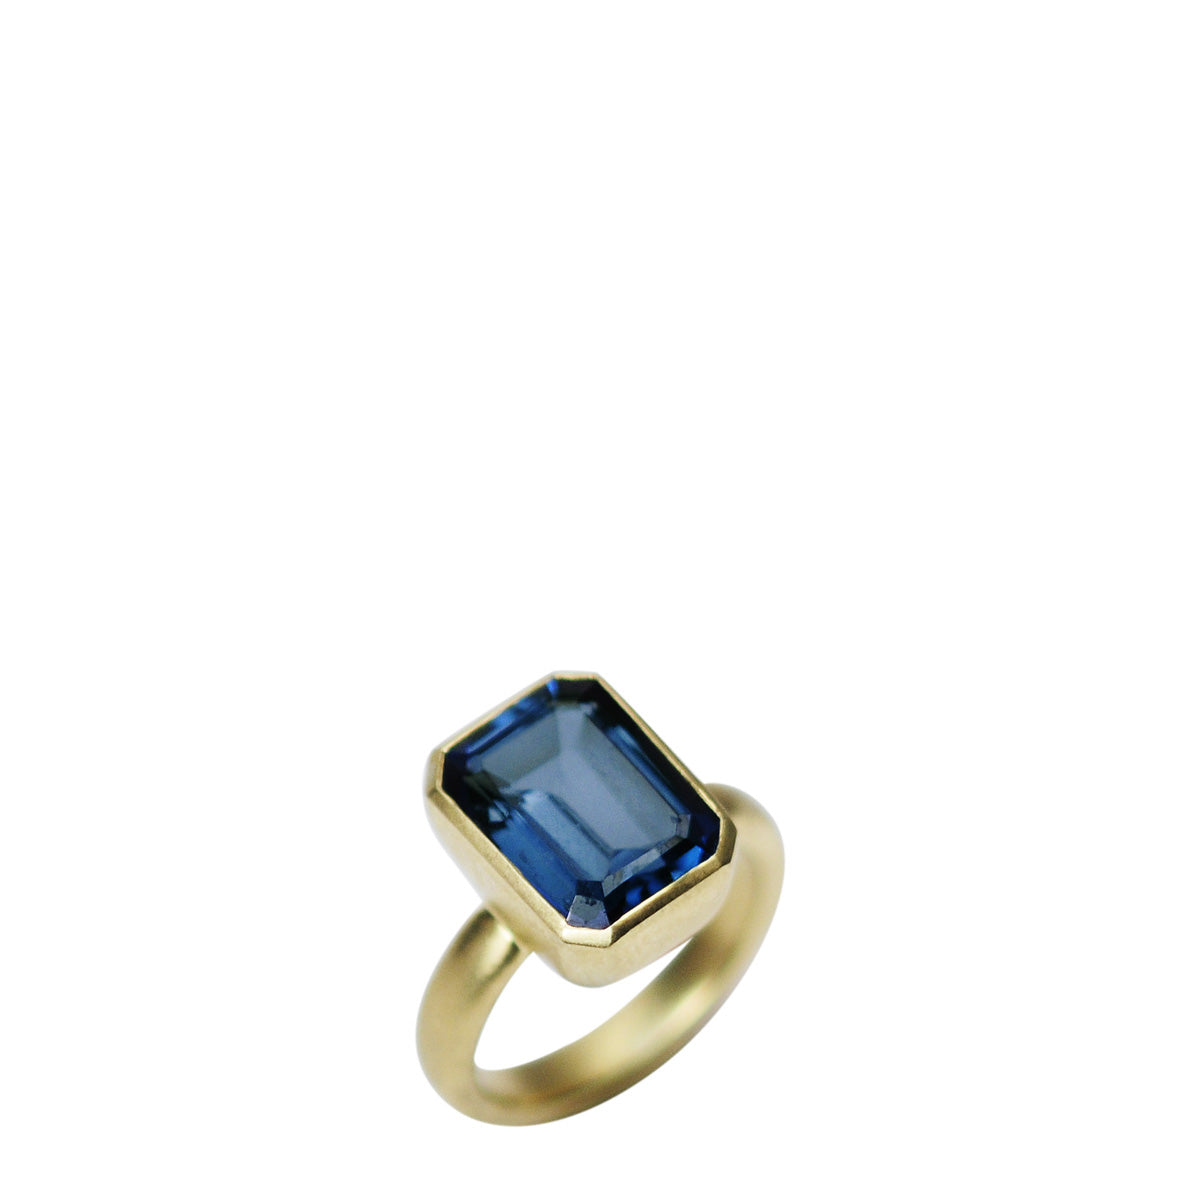 18K Gold Blue Topaz Emerald Cut Ring